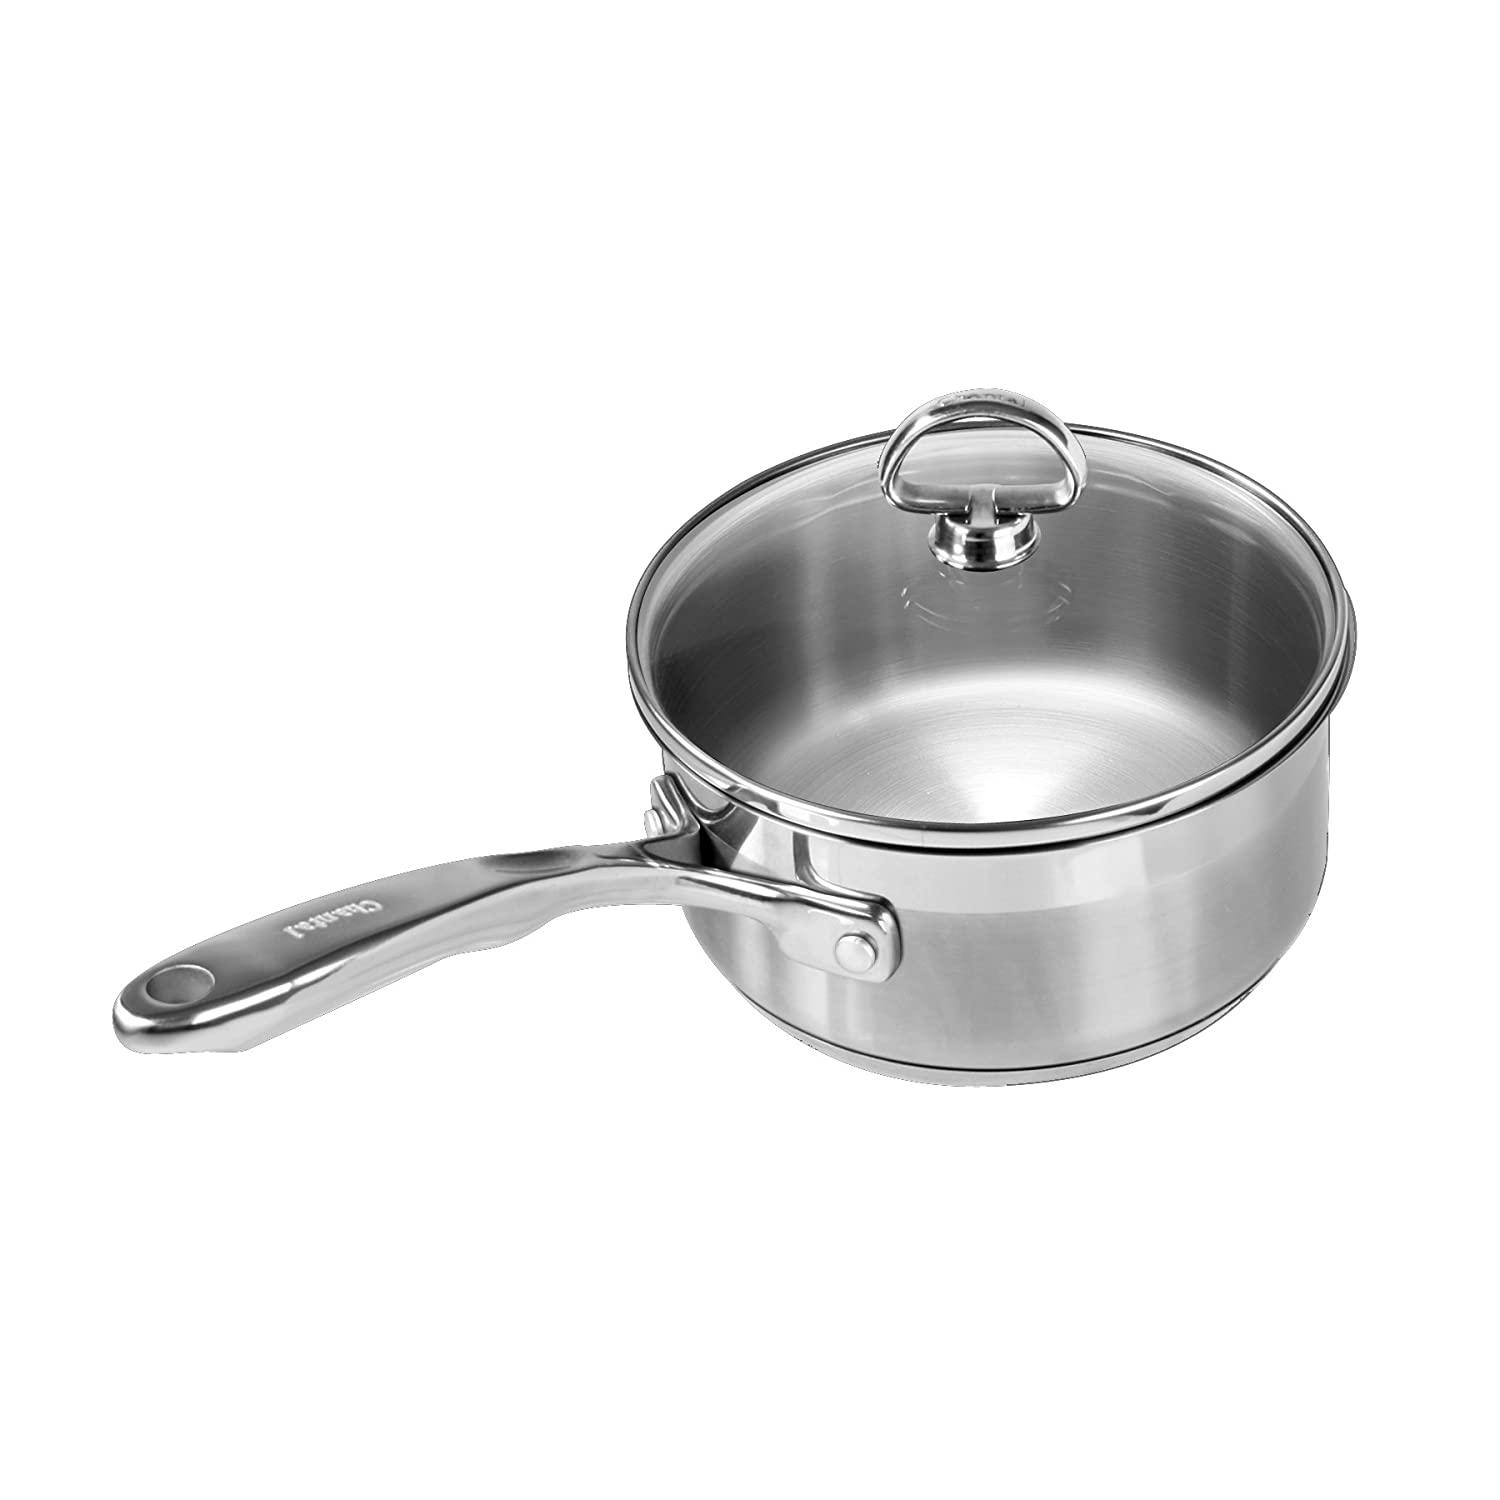 Amazon.com: Chantal SLIN35-162 Induction 21 Steel Sauce Pan with ...